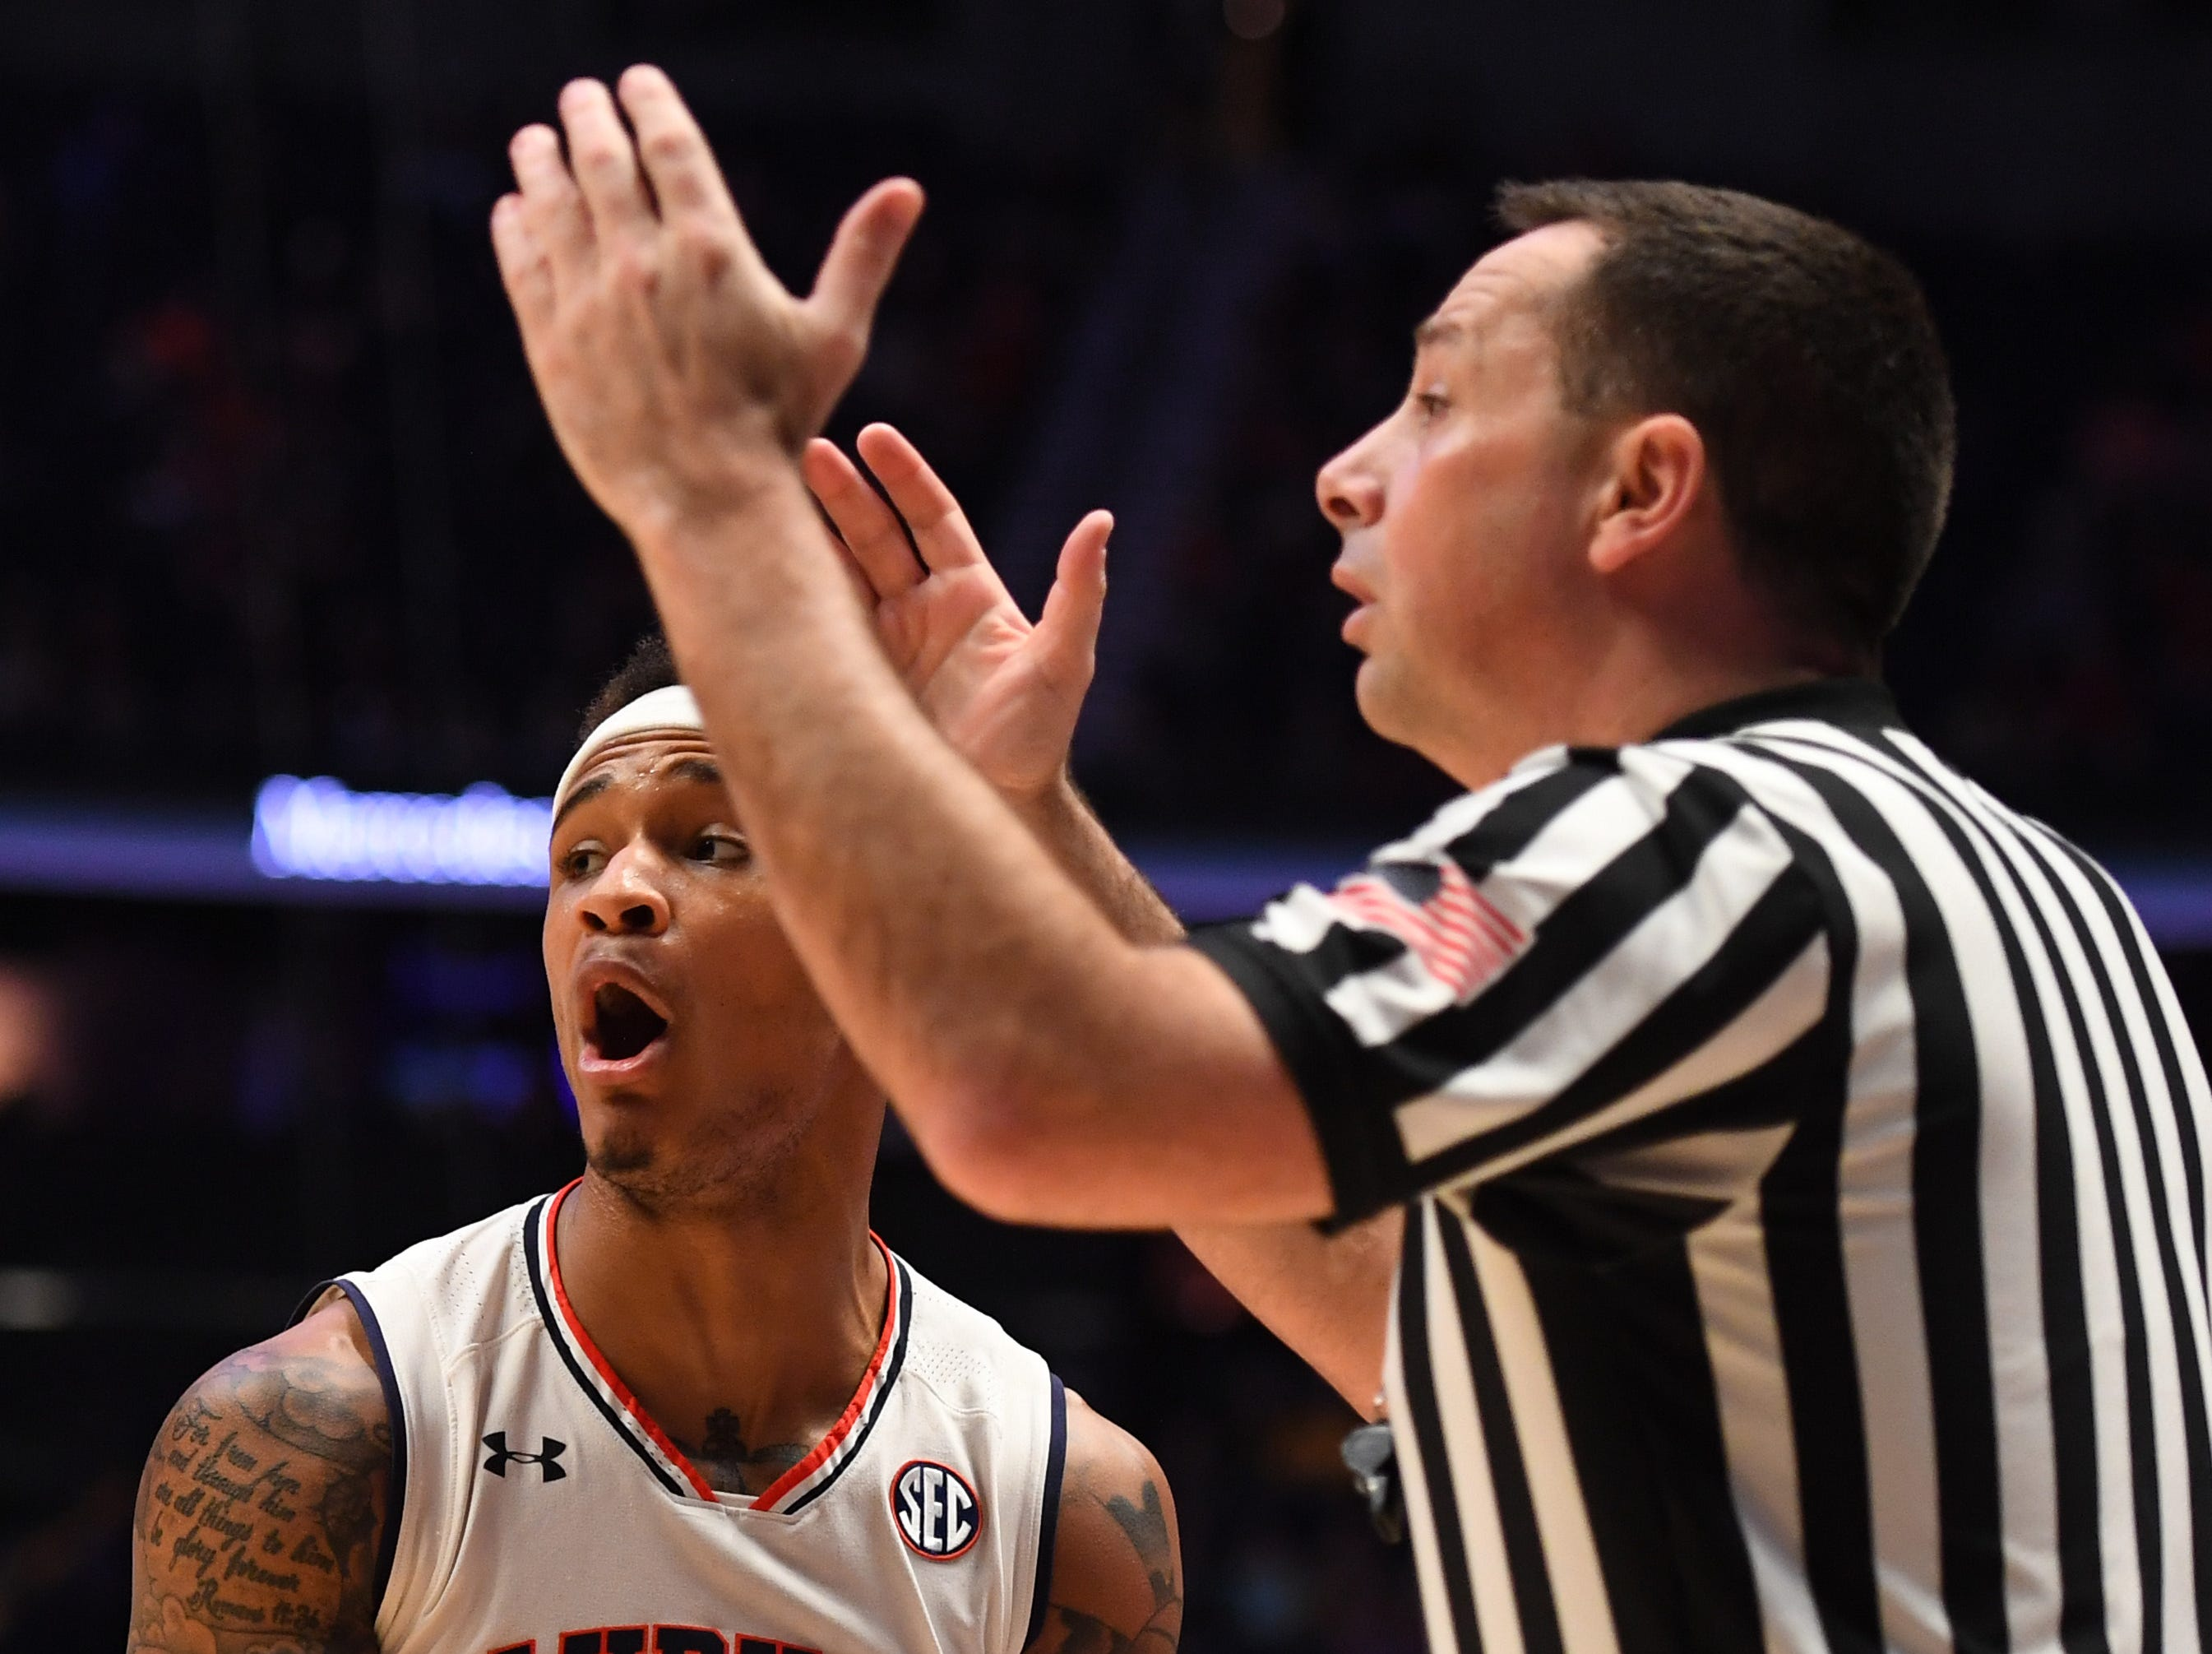 Mar 14, 2019; Nashville, TN, USA; Auburn Tigers guard Bryce Brown (2) disagrees with a call by the referees against the Missouri Tigers during the first half of the SEC conference tournament at Bridgestone Arena. Mandatory Credit: Christopher Hanewinckel-USA TODAY Sports